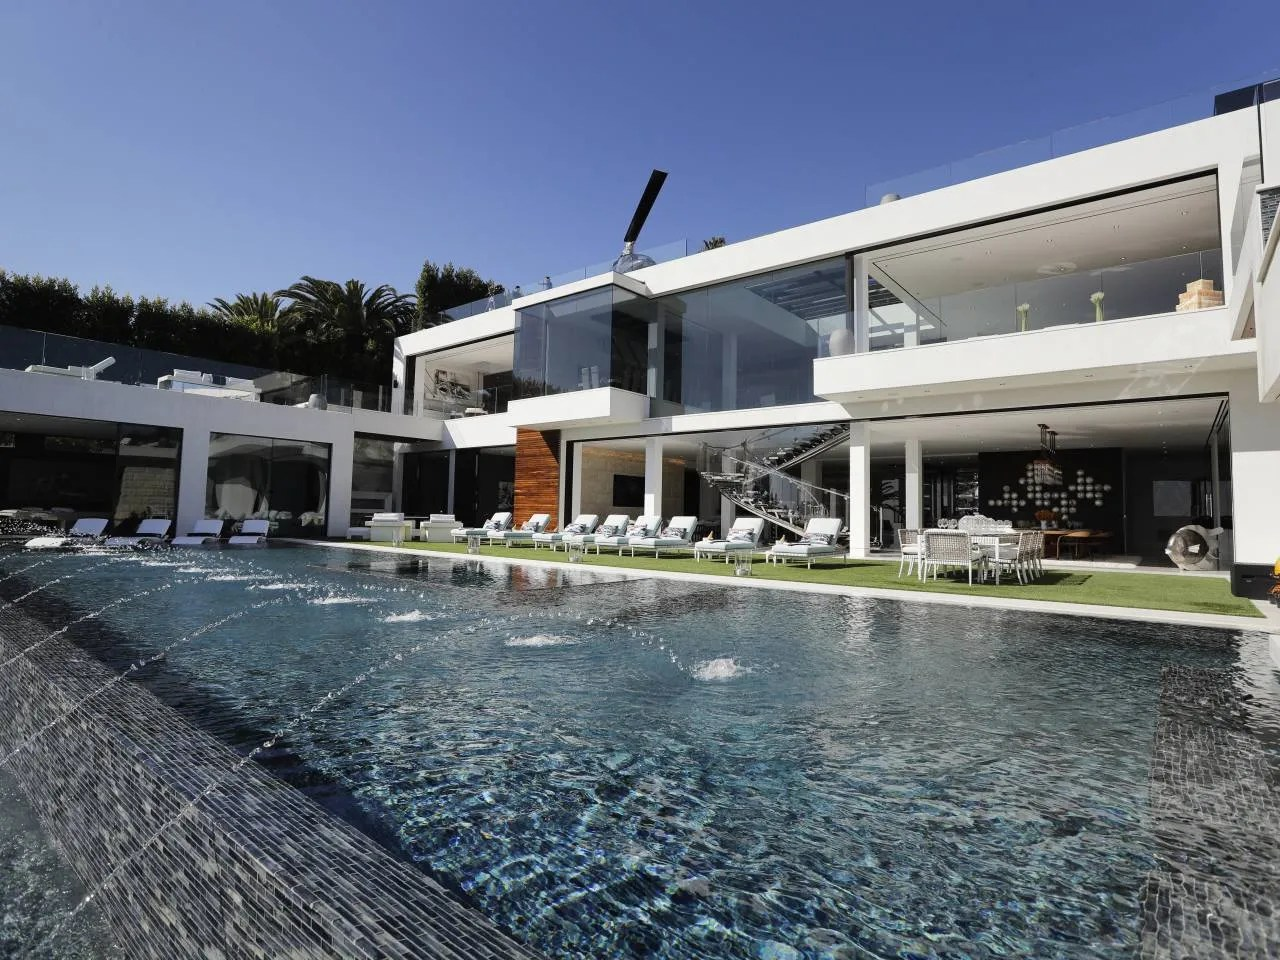 Bel Air Mega Mansion For Sale Champagne Dreams 250 Million Los Angeles Mega Mansion Is